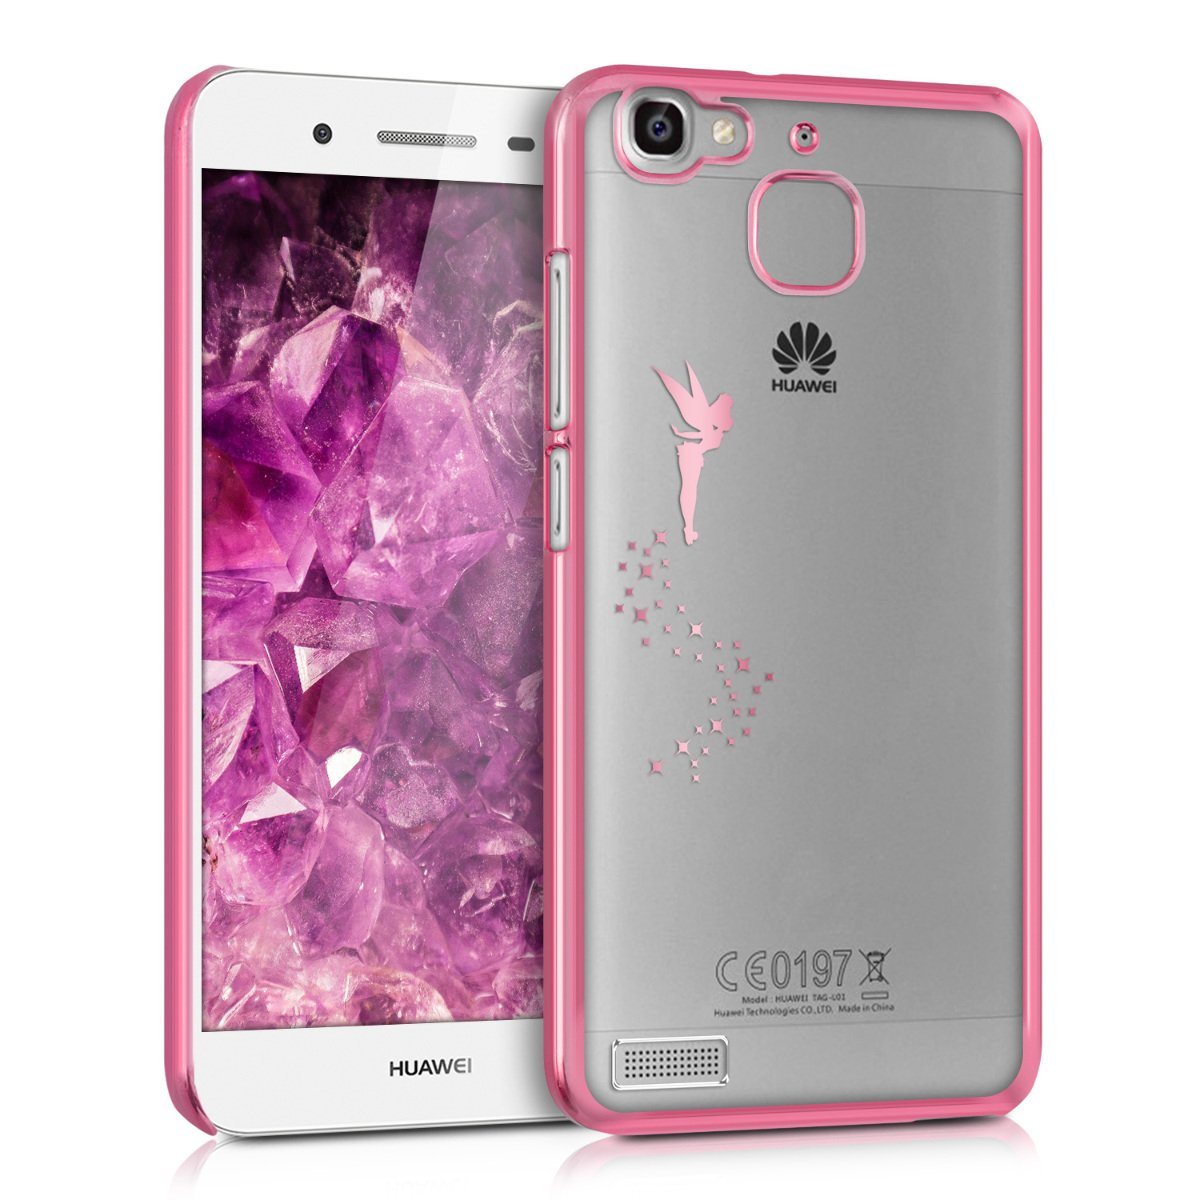 kwmobile Crystal TPU Case for Huawei GR3 / P8 Lite Smart - Soft Flexible Transparent Silicone Protective Cover - Dark Pink/Transparent